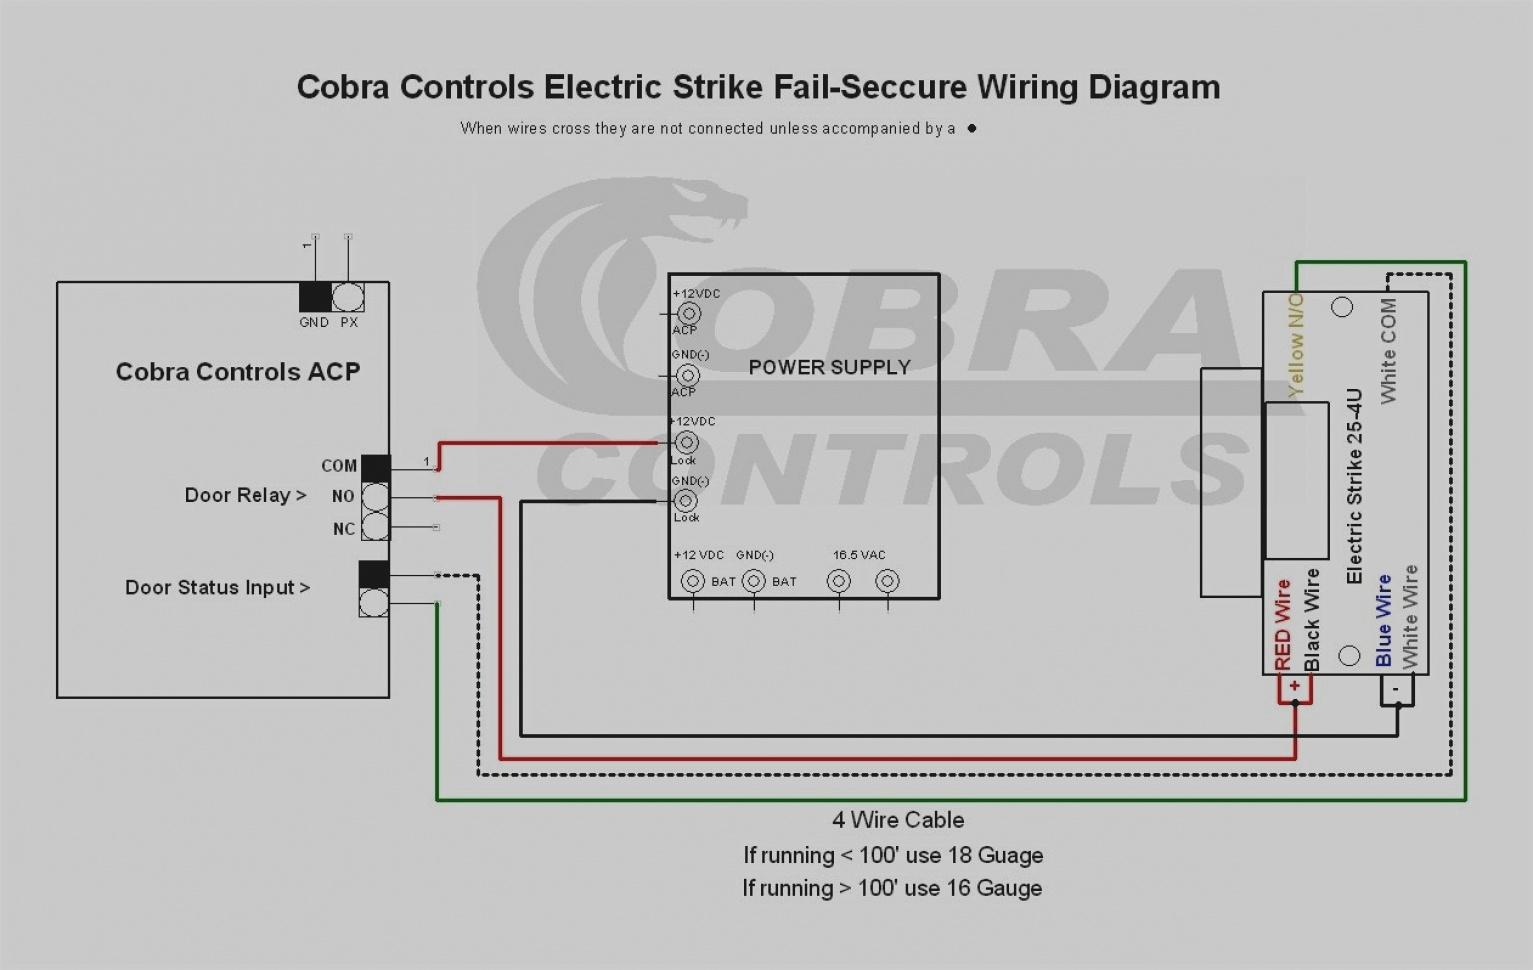 hes 1006 12 24d 630 wiring diagram Collection-Hes 1006 12 24d 630 Wiring Diagram New Hes 5000 Wiring Diagram In Webtor Me 2-b